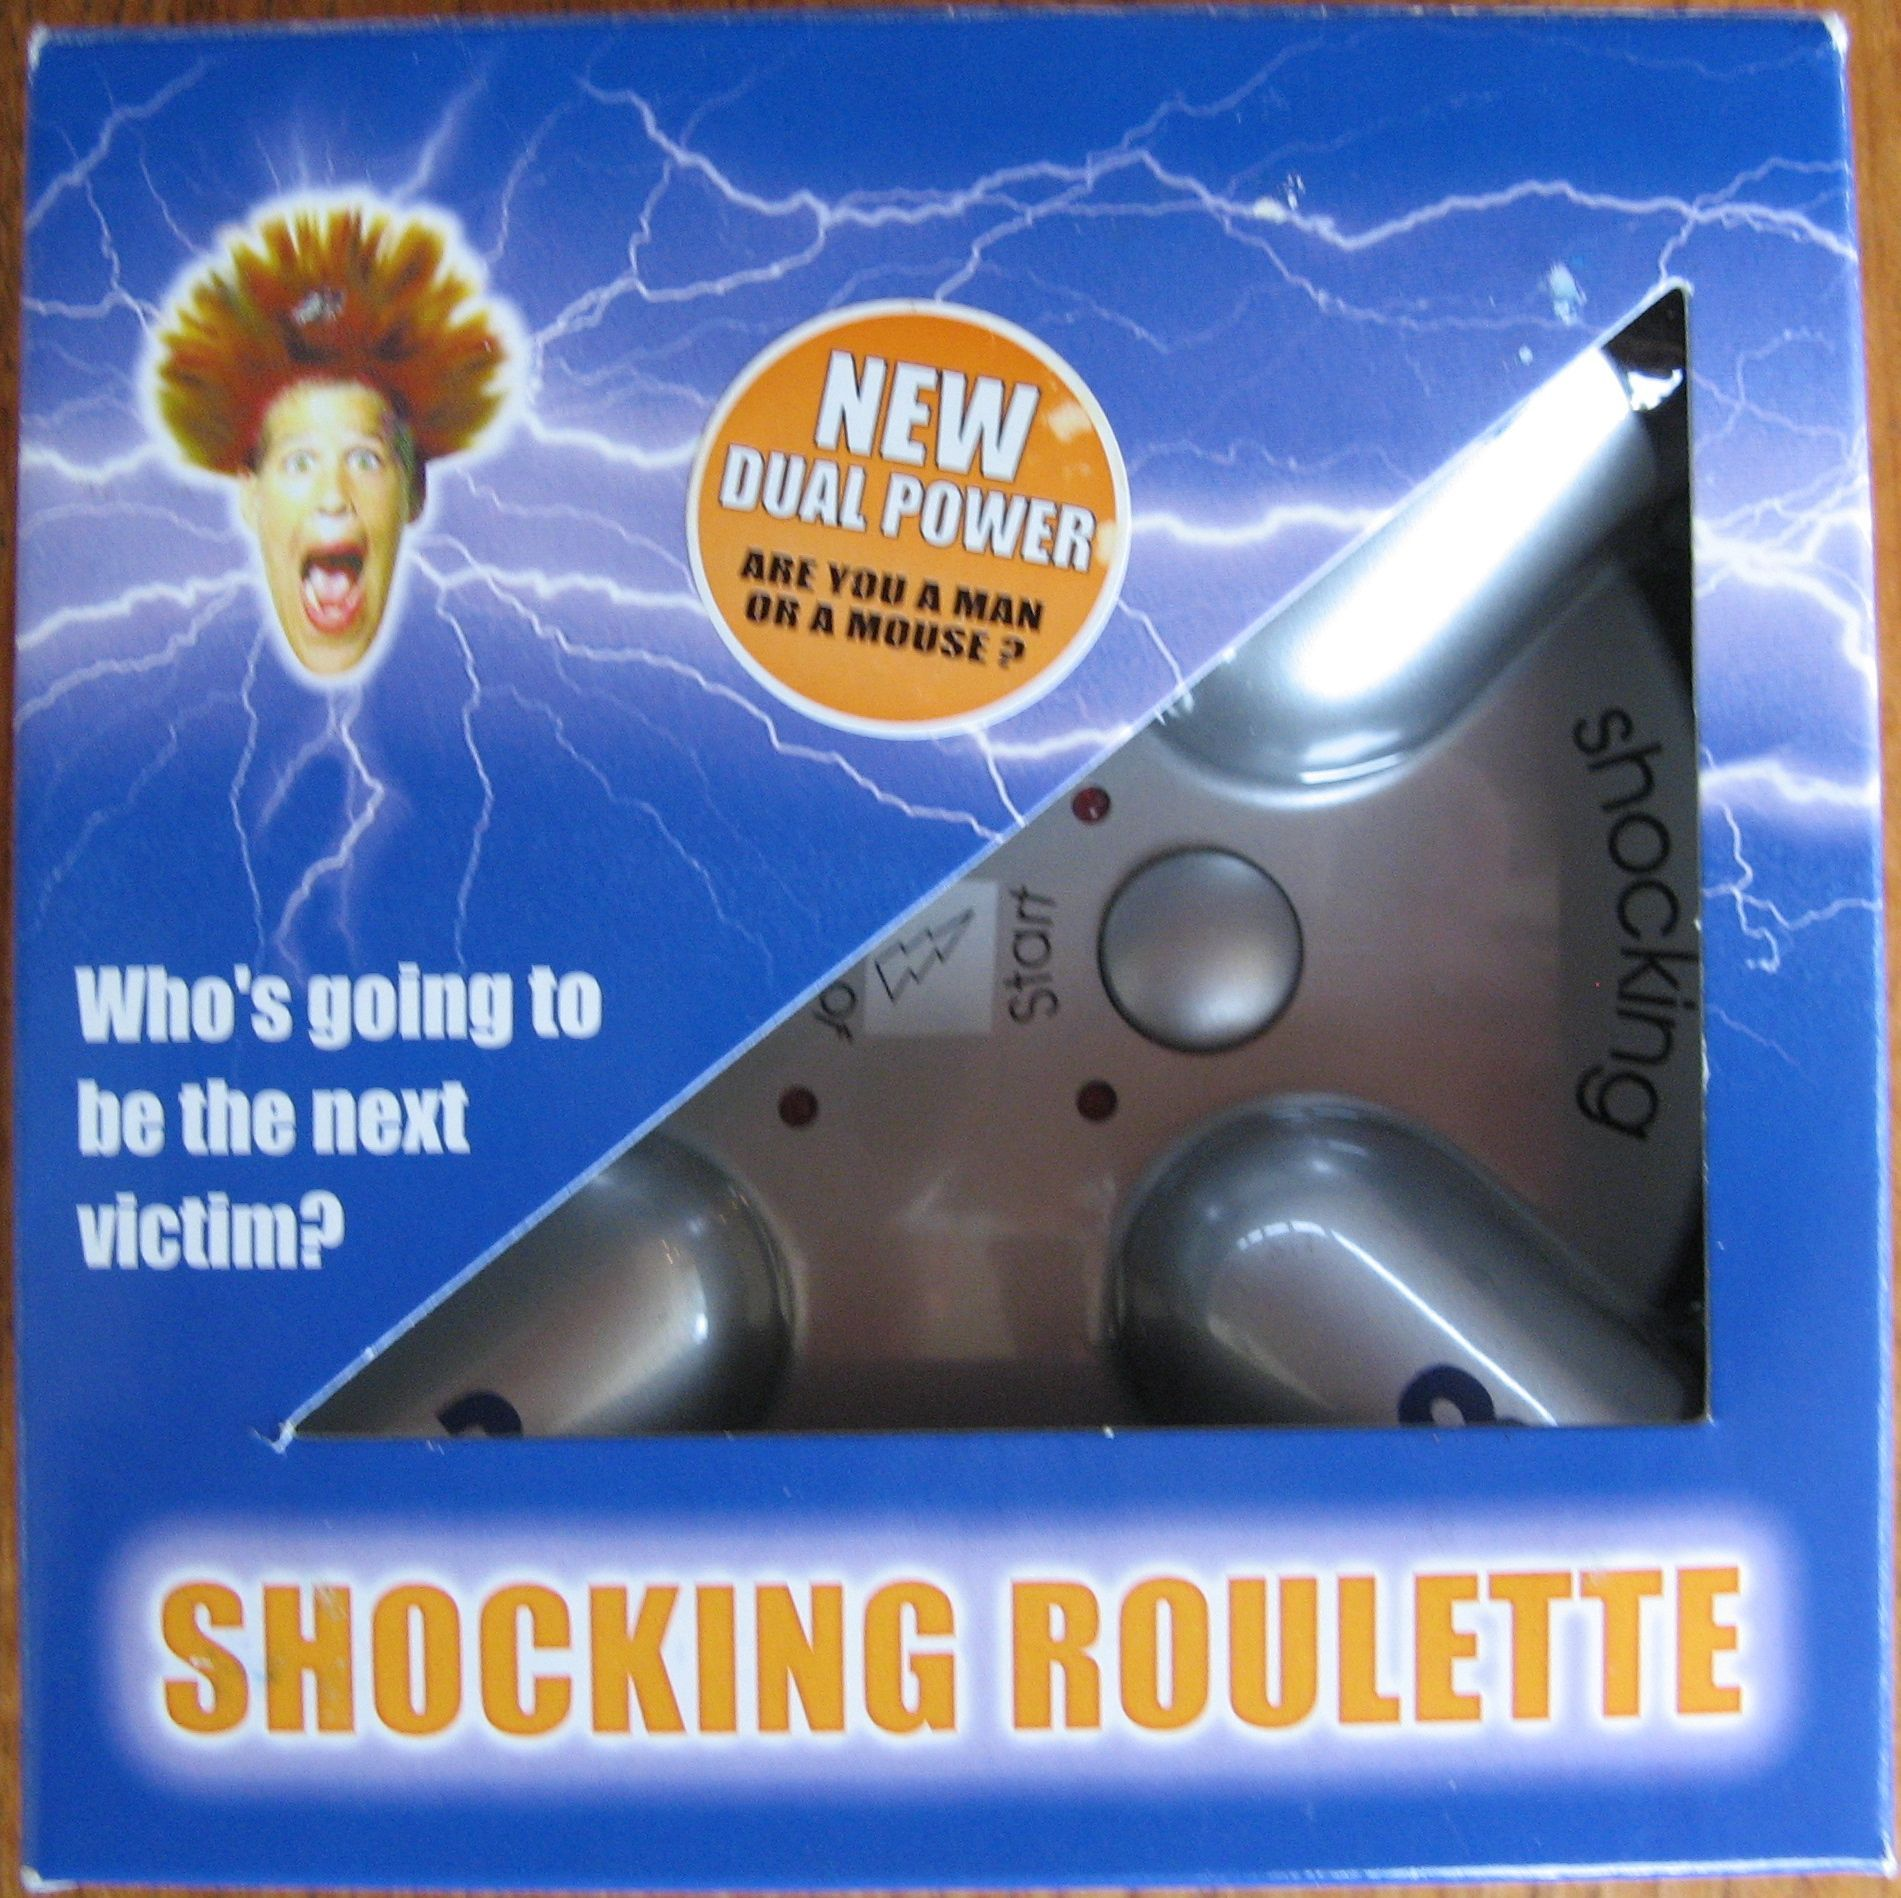 Shocking Roulette